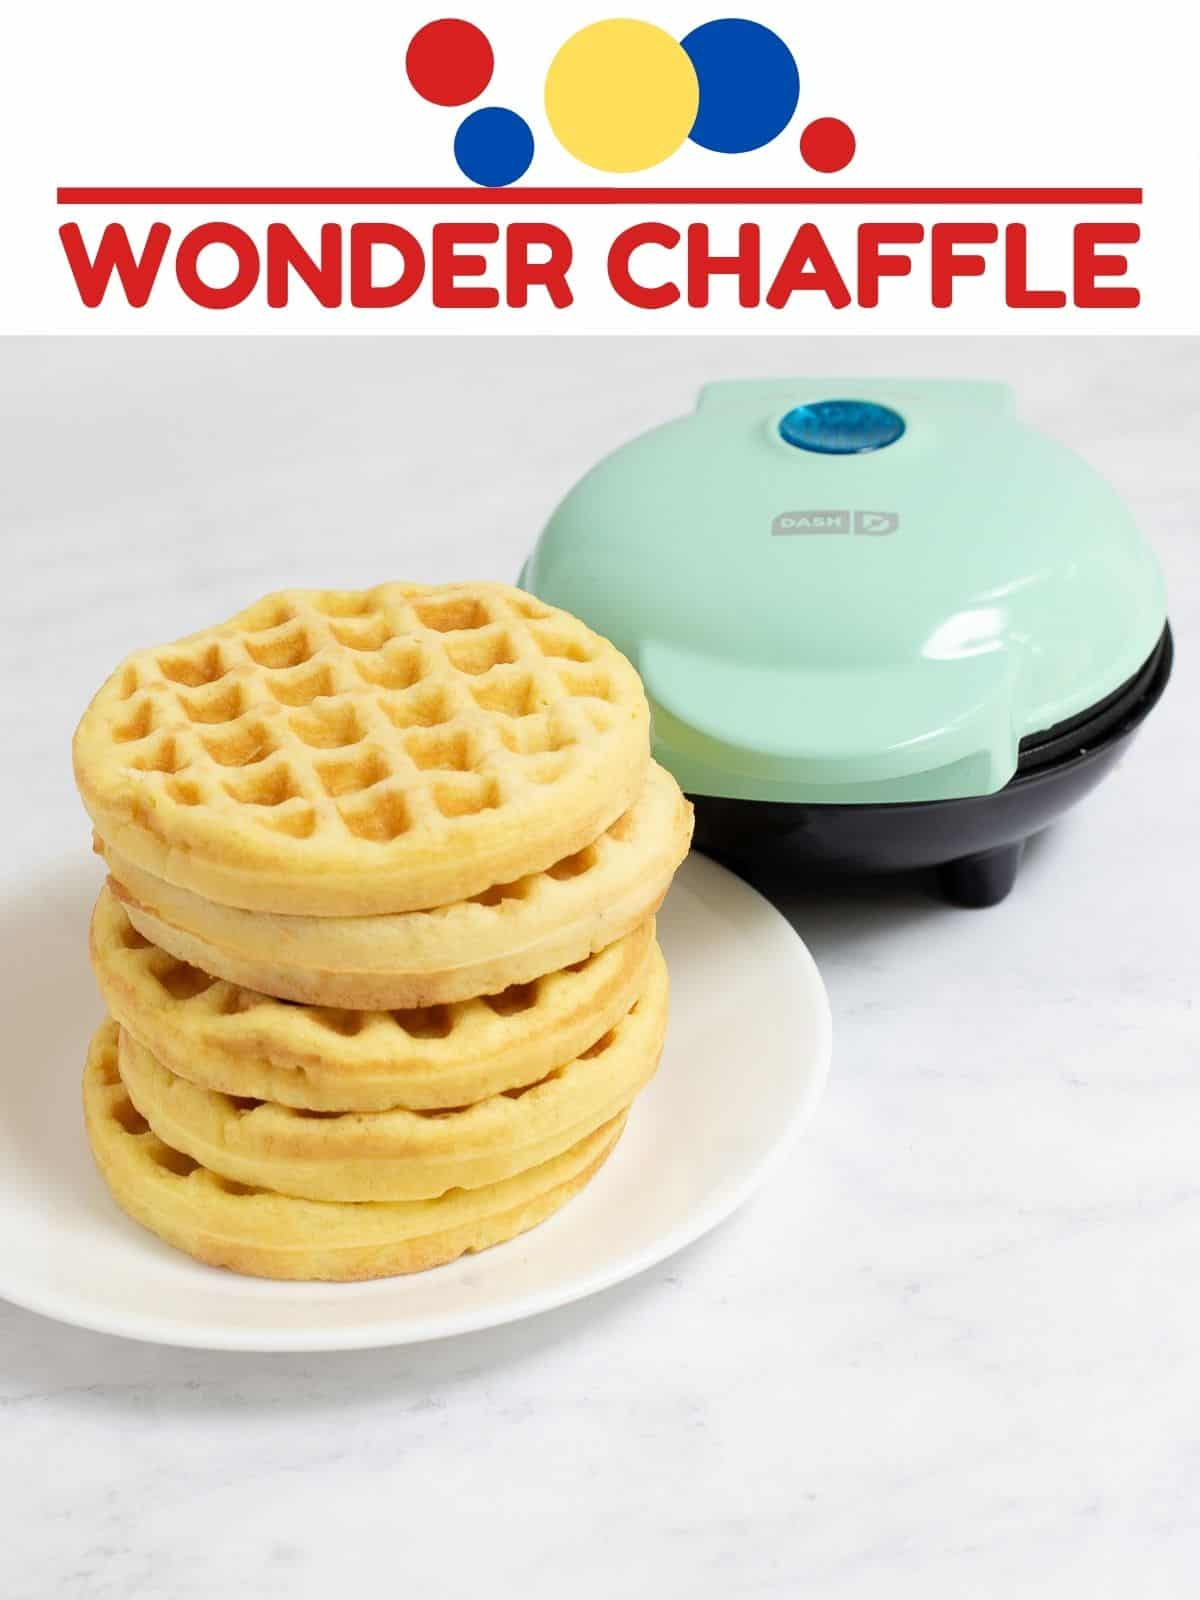 best wonder bread chaffle recipe with stack of chaffles and dash waffle iron